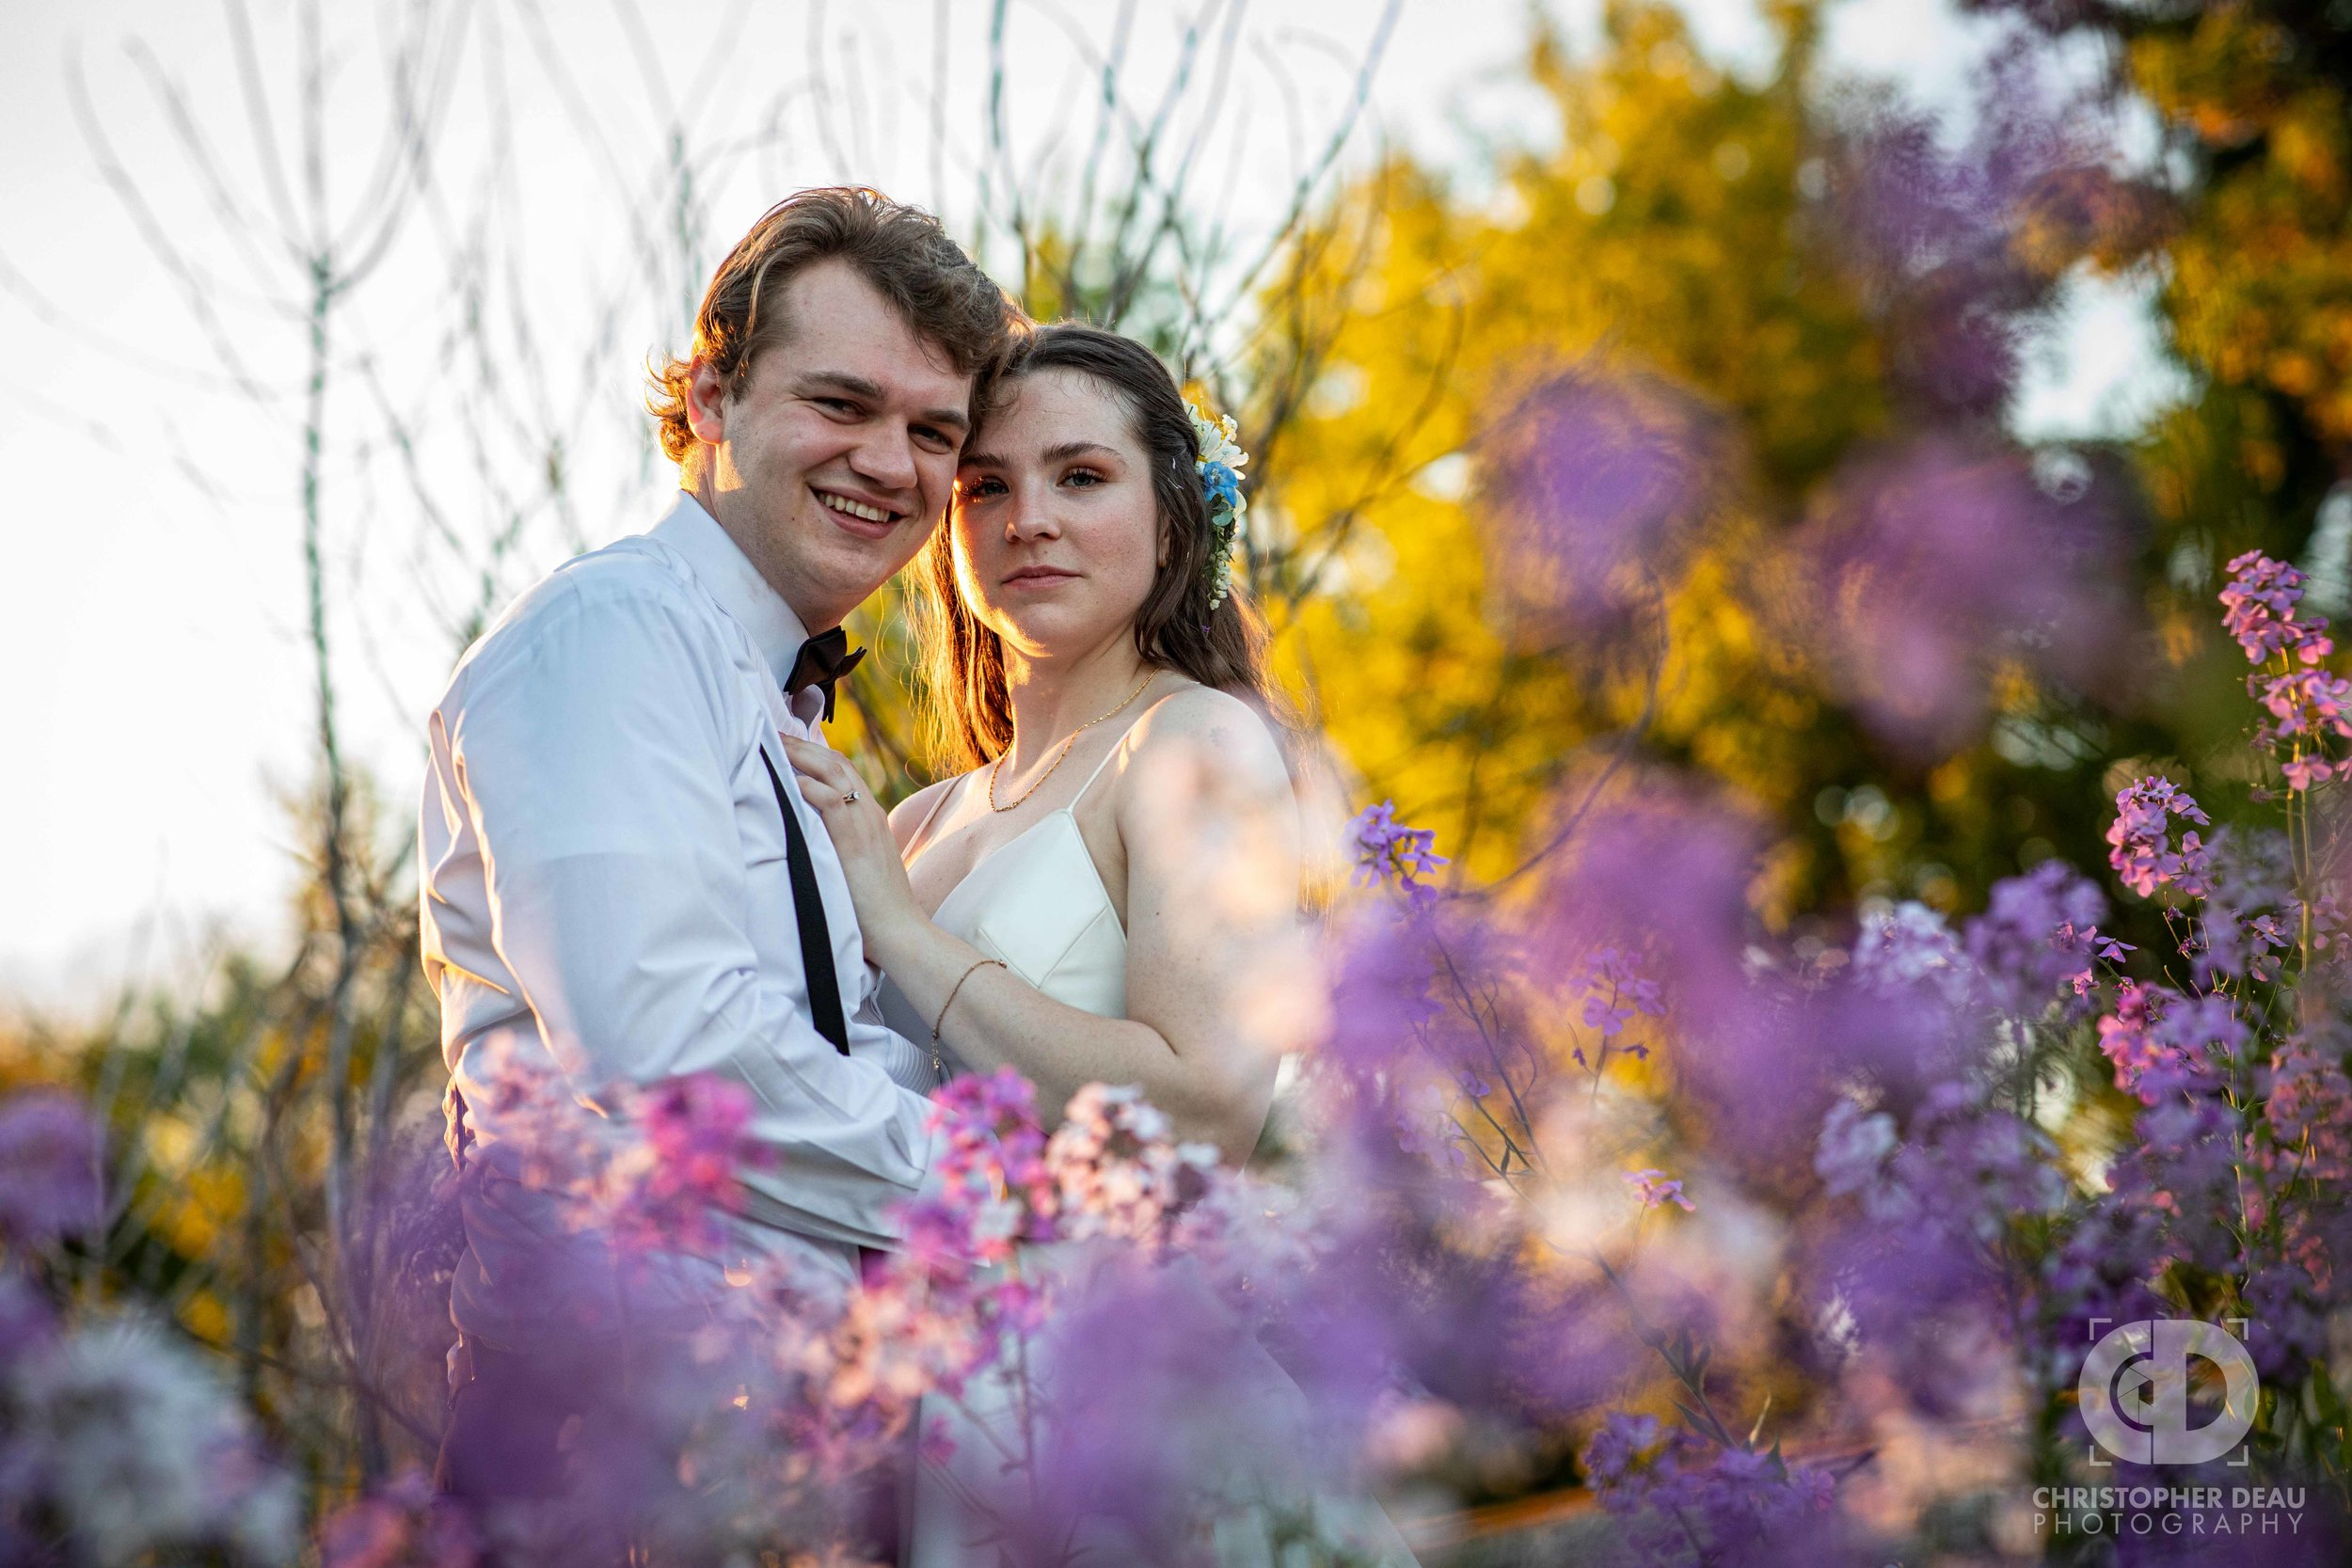 purple and white wild flowers surround bride and groom